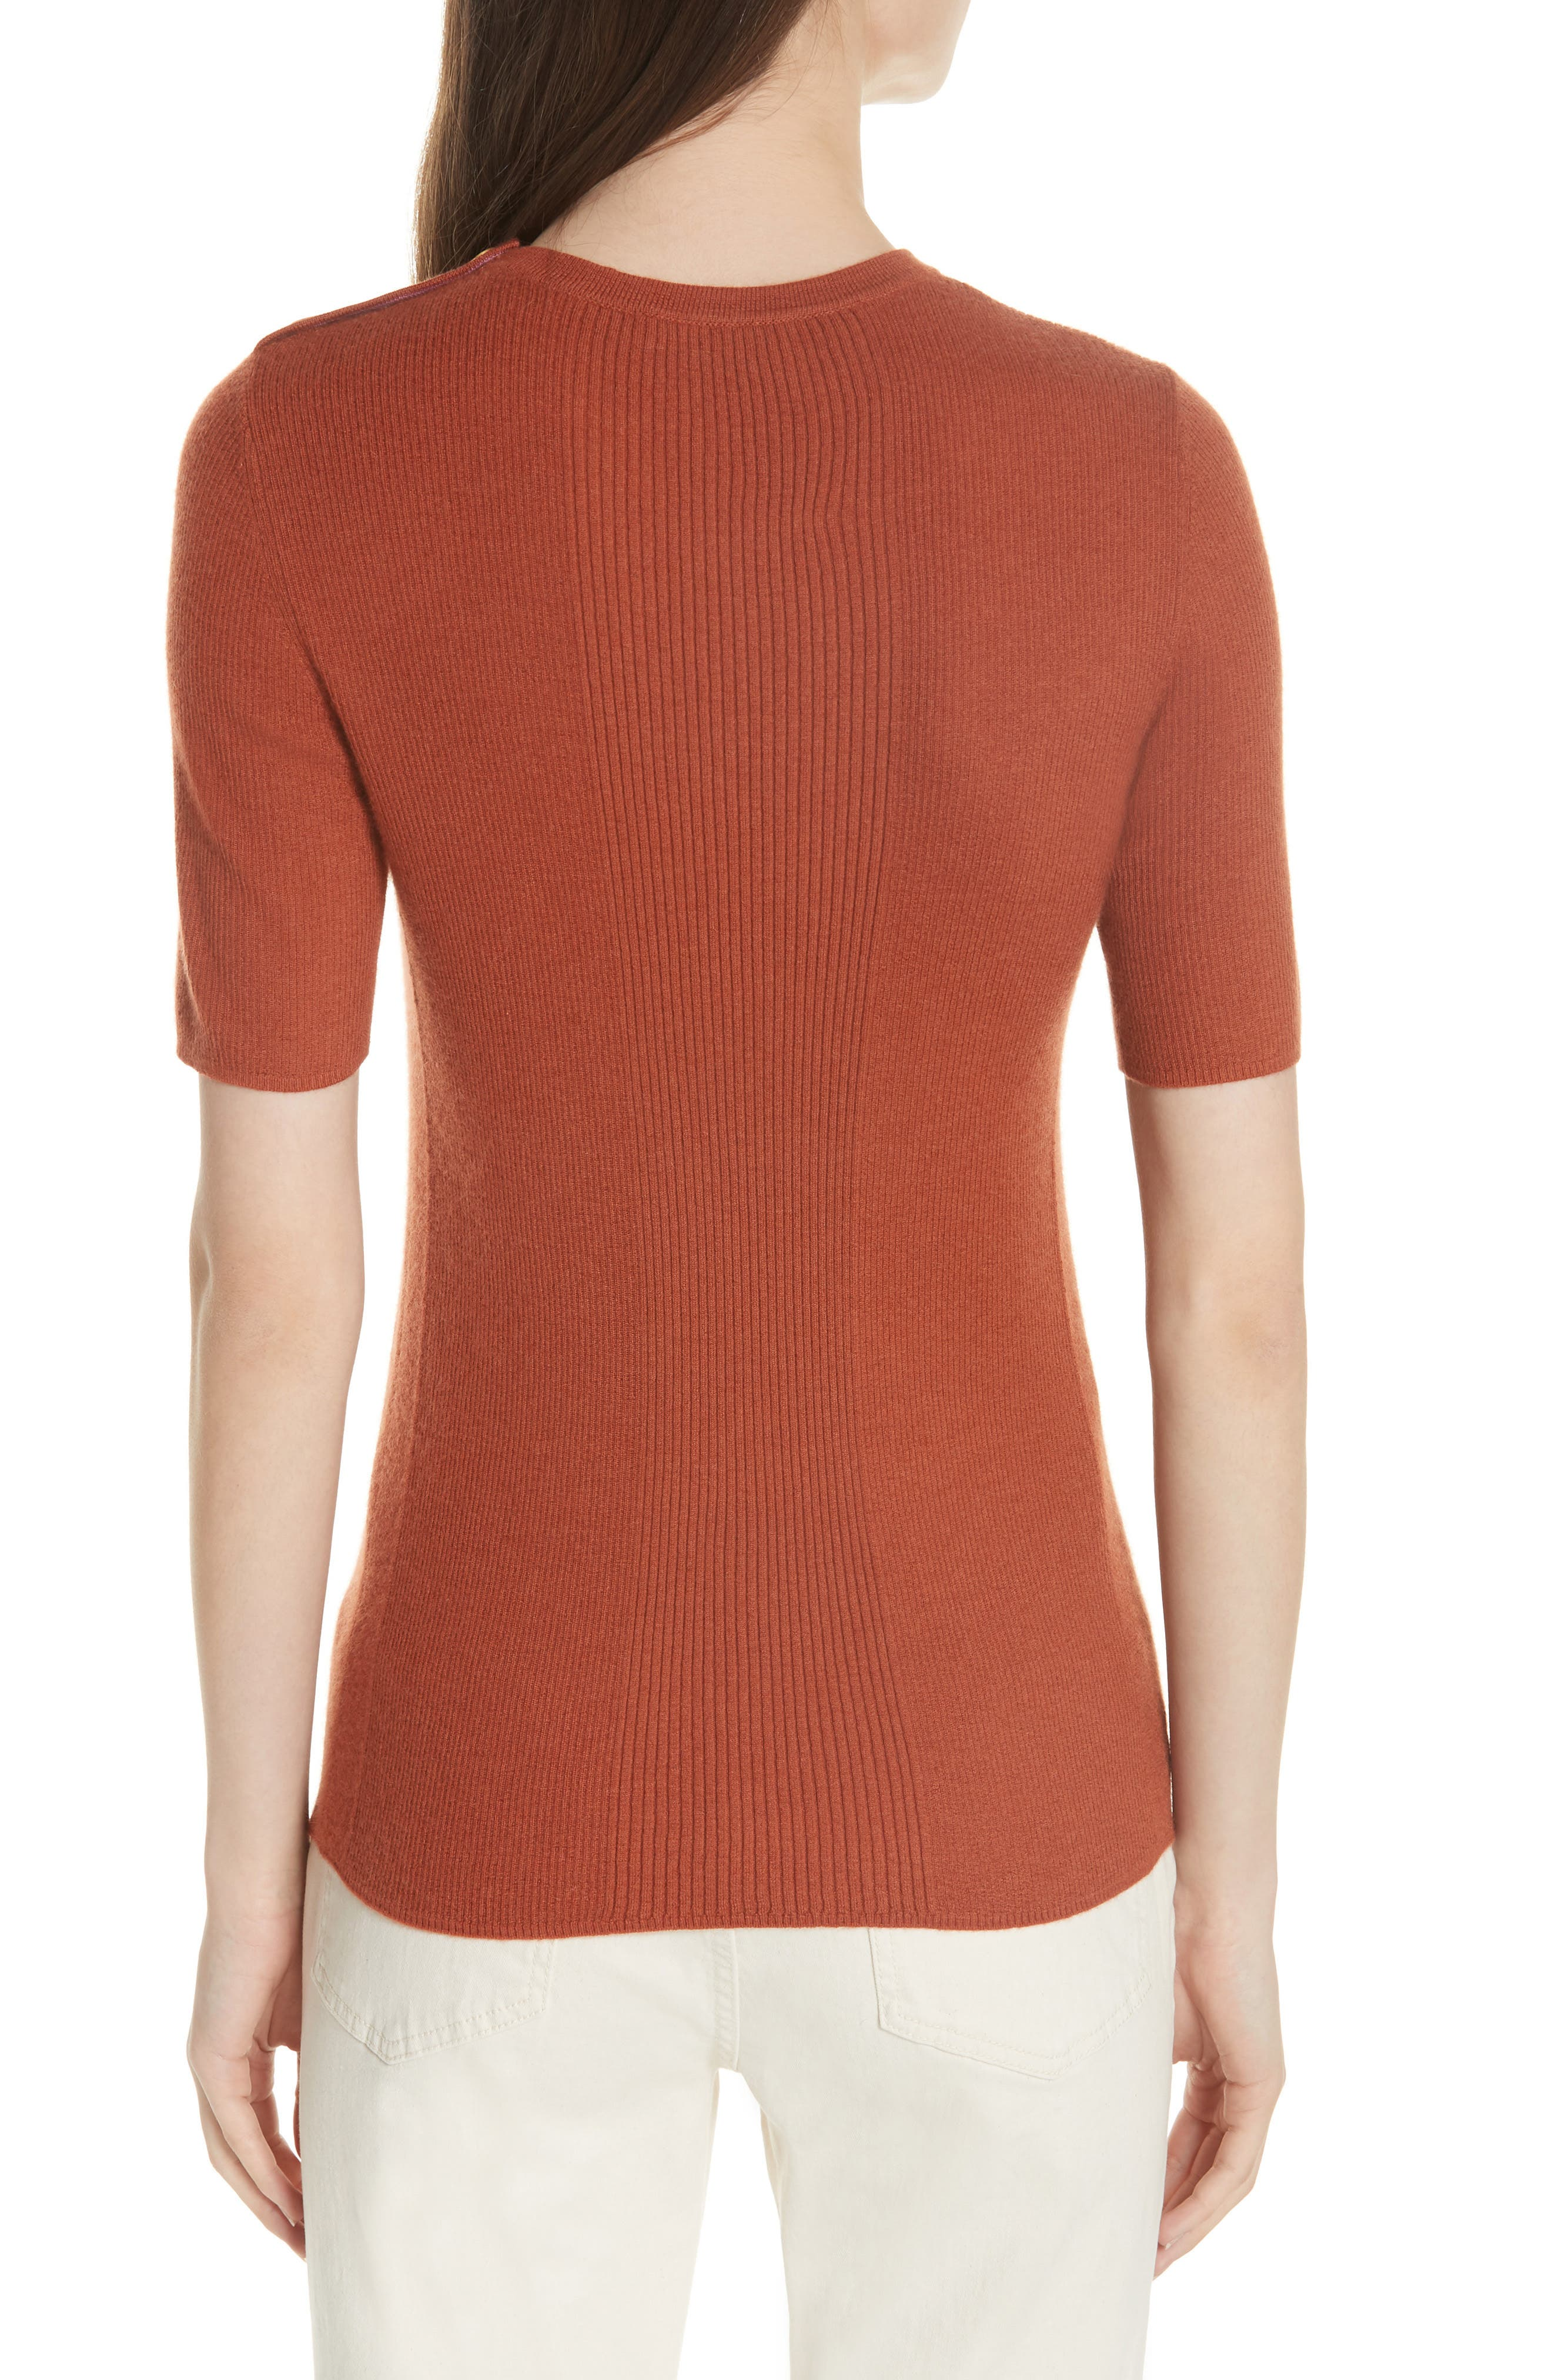 Taylor Ribbed Cashmere Sweater,                             Alternate thumbnail 2, color,                             DESERT SPICE